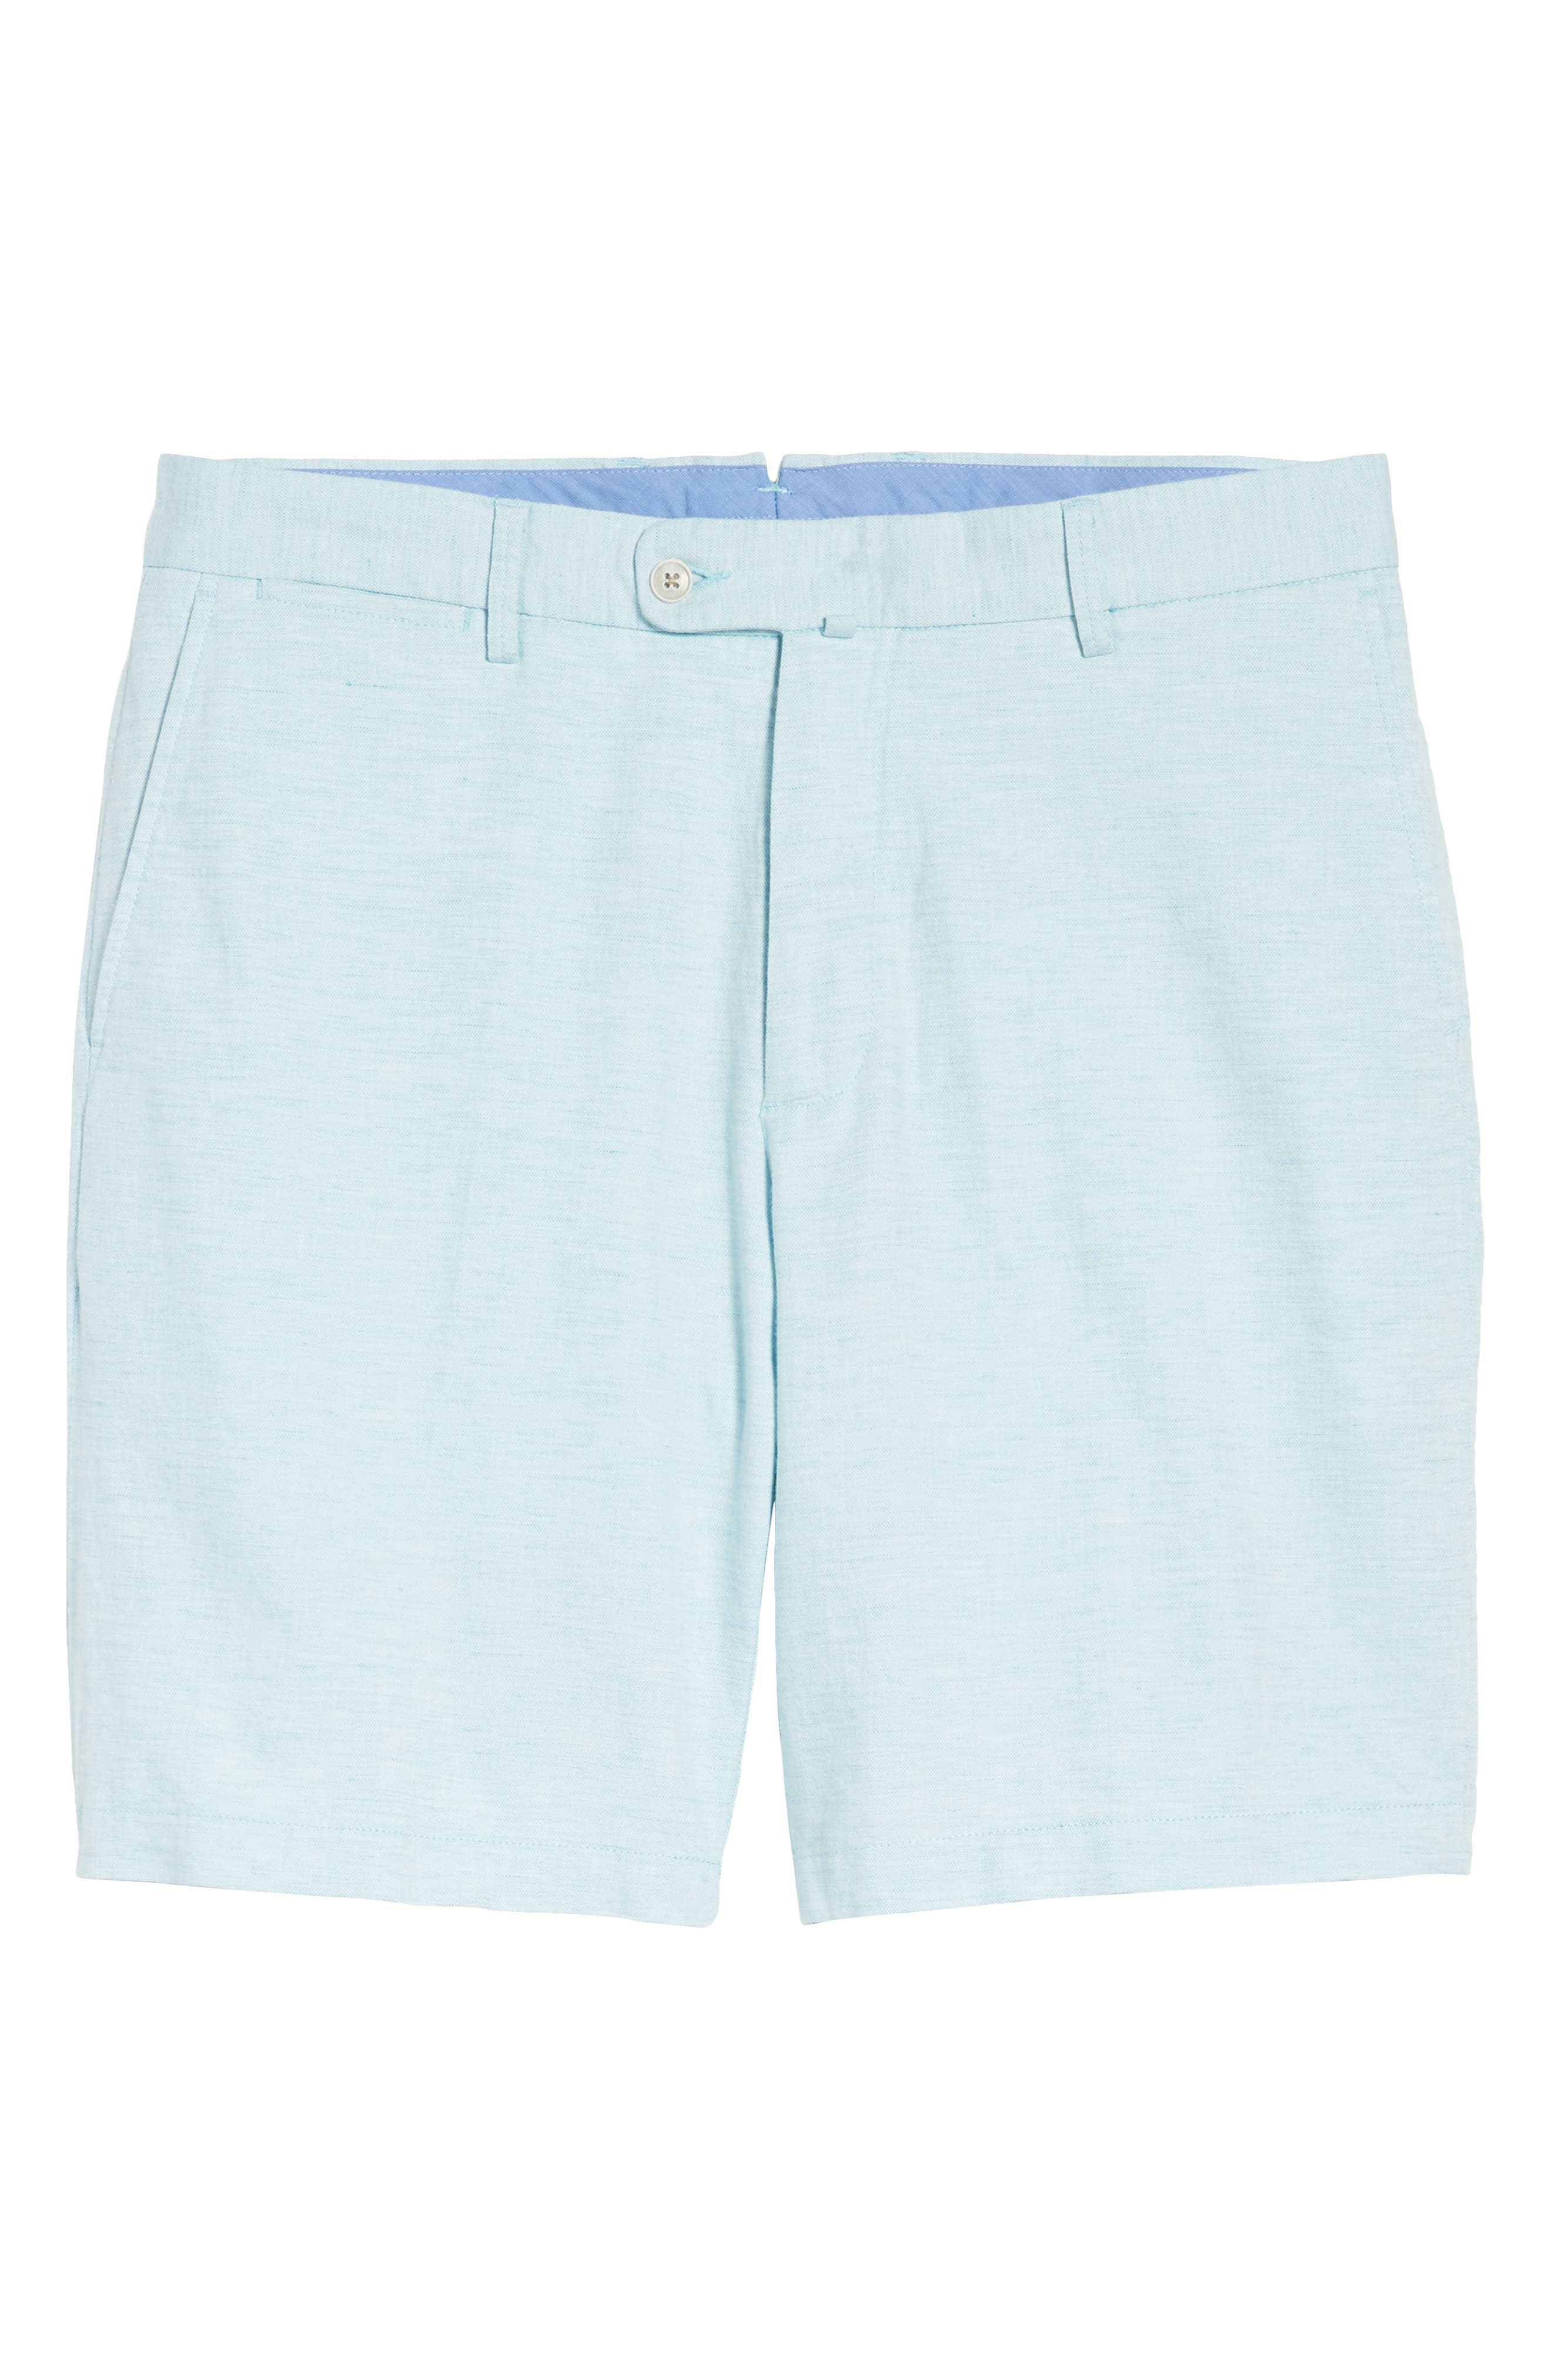 Crown Cool Delave Flat Front Shorts,                             Alternate thumbnail 6, color,                             477